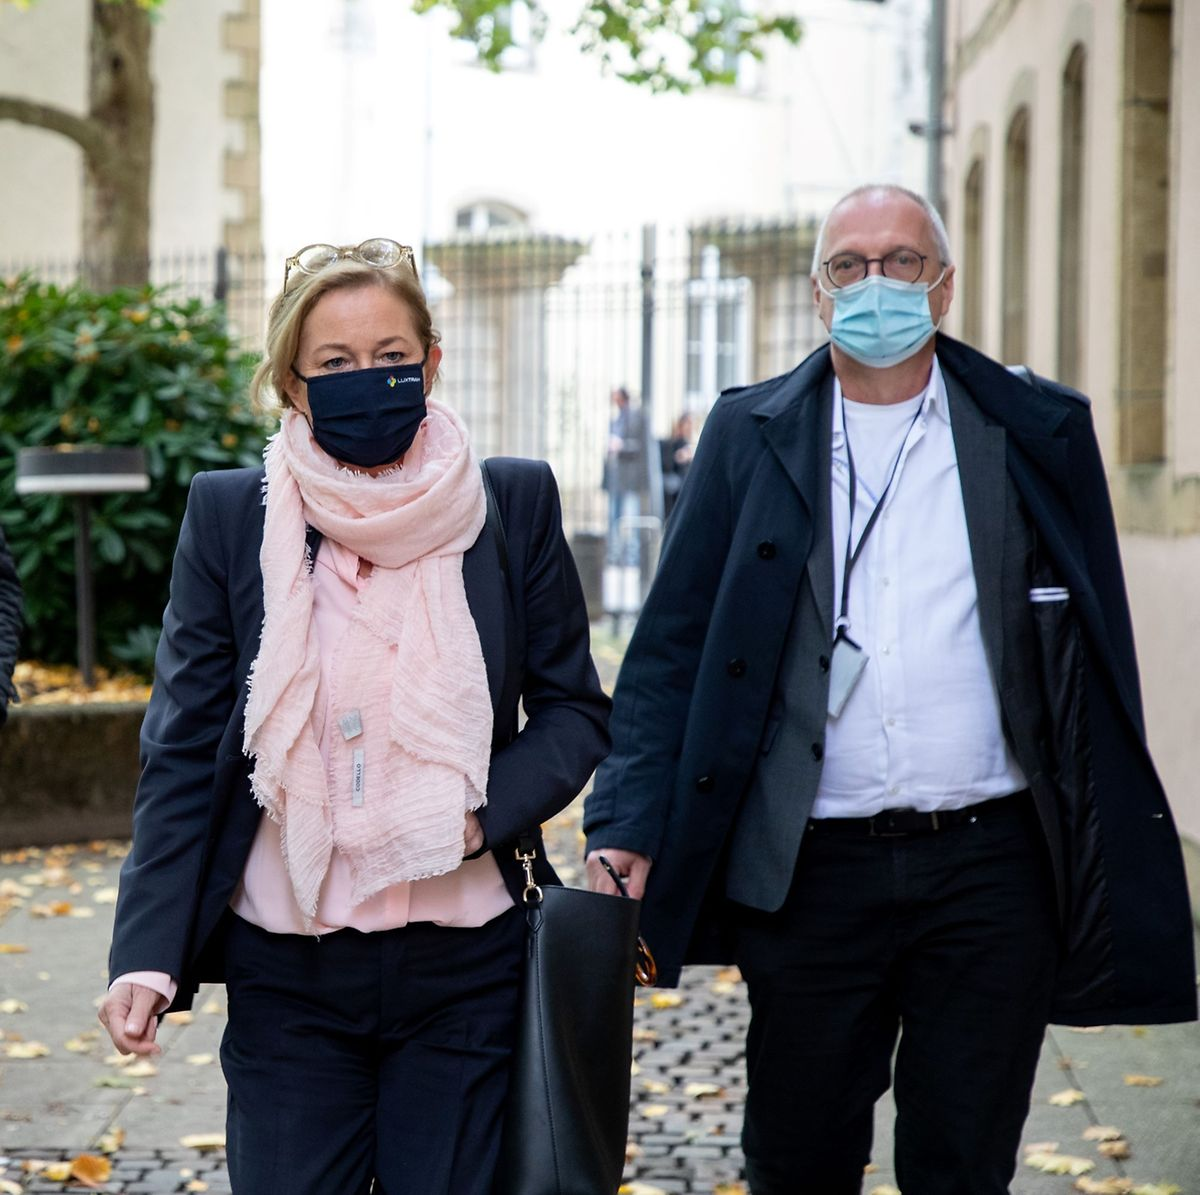 Luxembourg Health Minister Paulette Lenert and national Health Director Jean Claude Schmit arrive for a press briefing on Wednesday about the coronavirus pandemic PHOTO: Guy Jallay